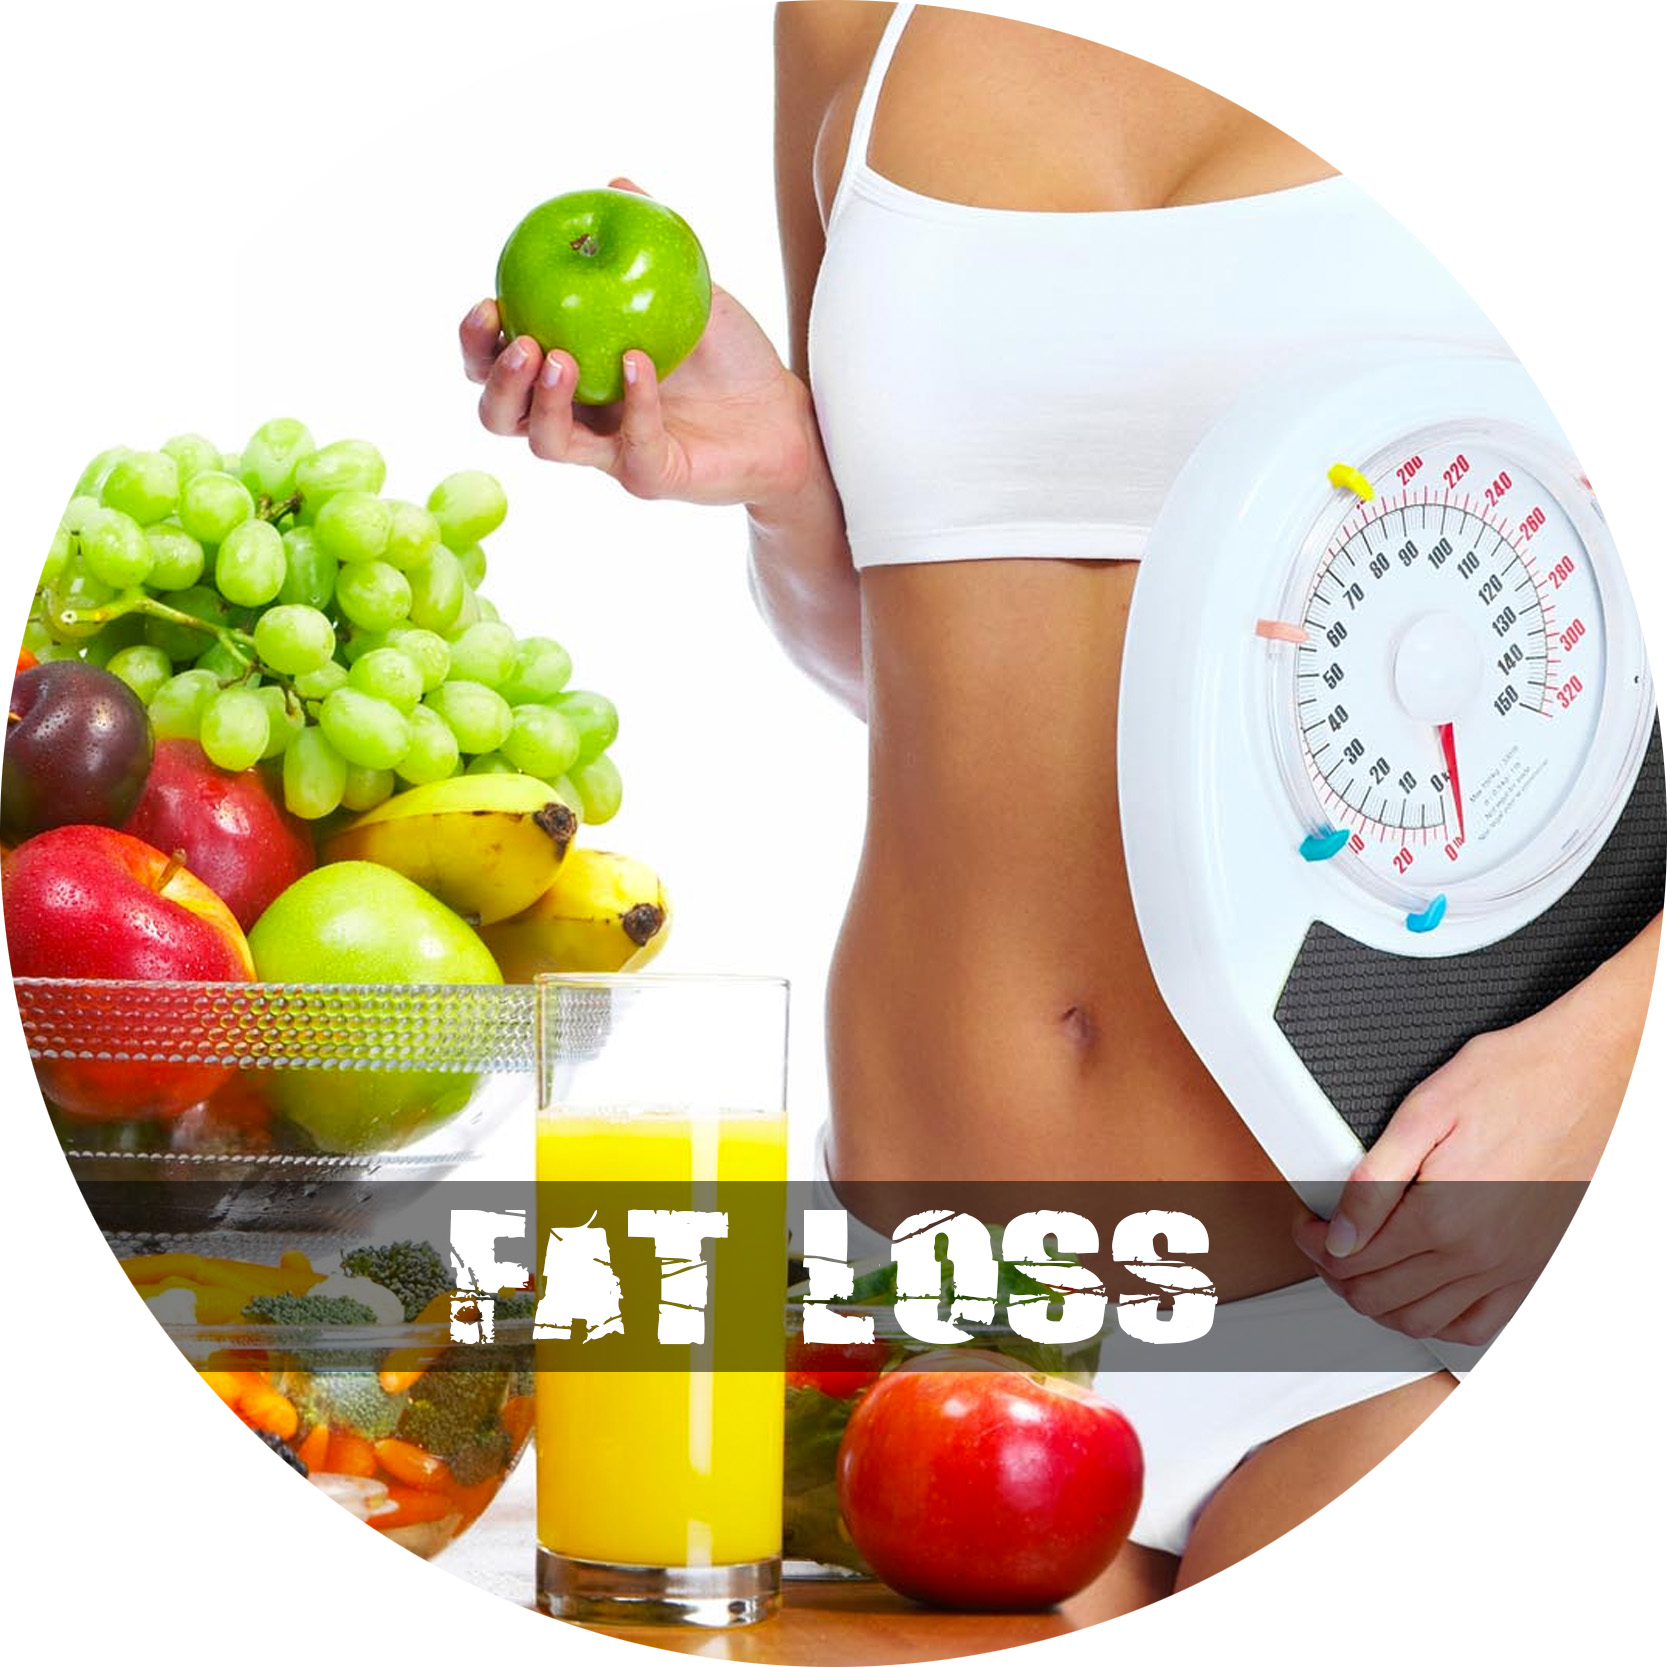 Fat Loss Nutrition Circle - AHP.jpg